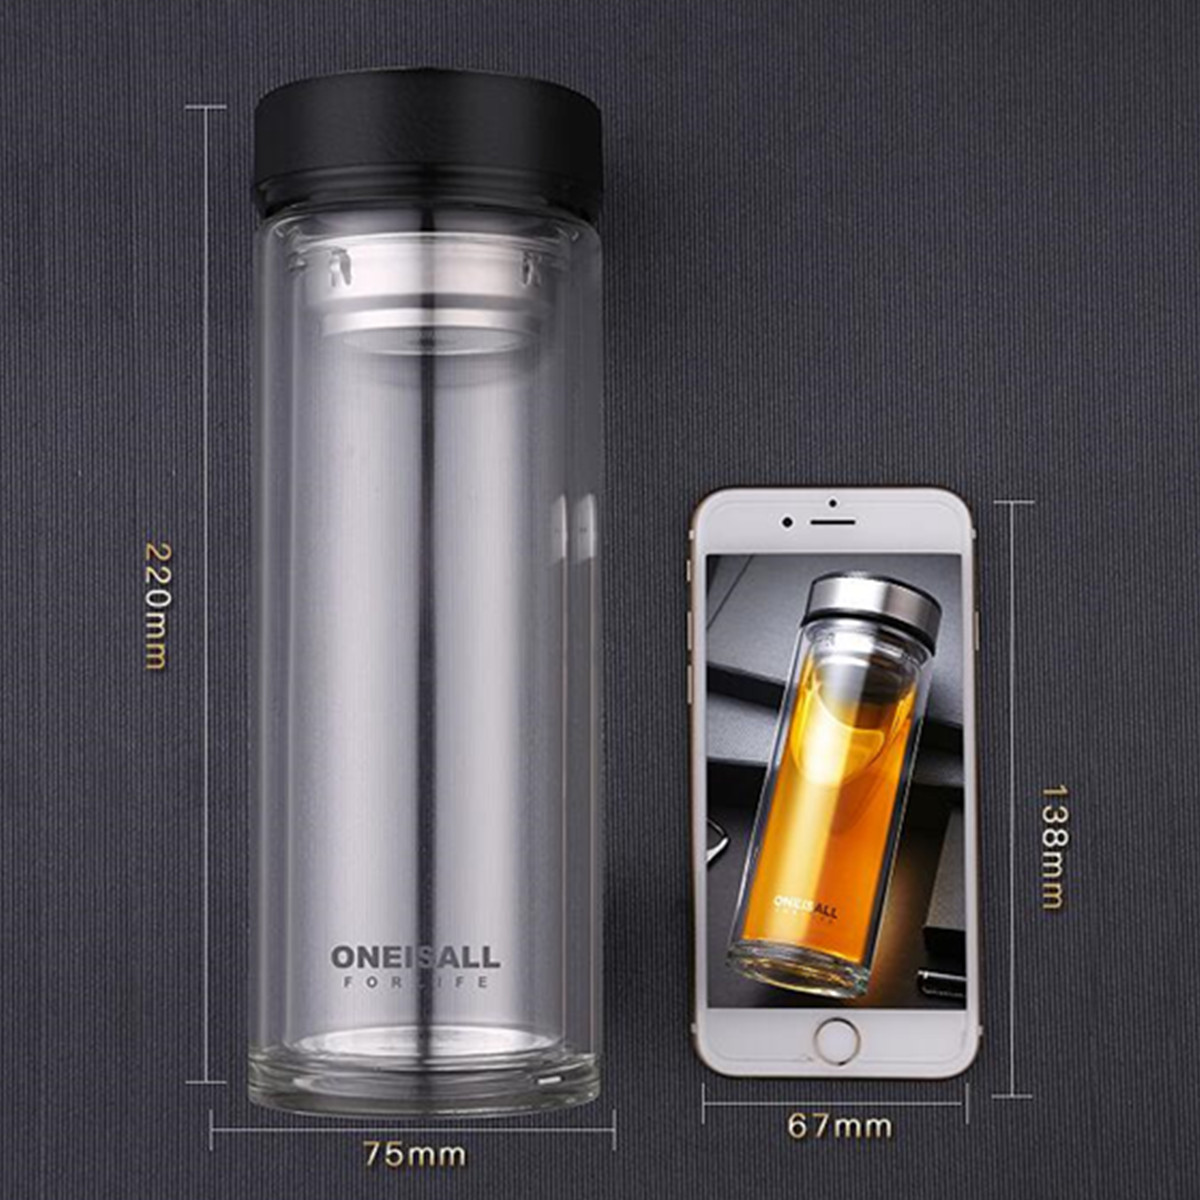 Oneisall 500ml Glass Water Bottle Cup Sports Home Office Travel Mug With Tea Infuser